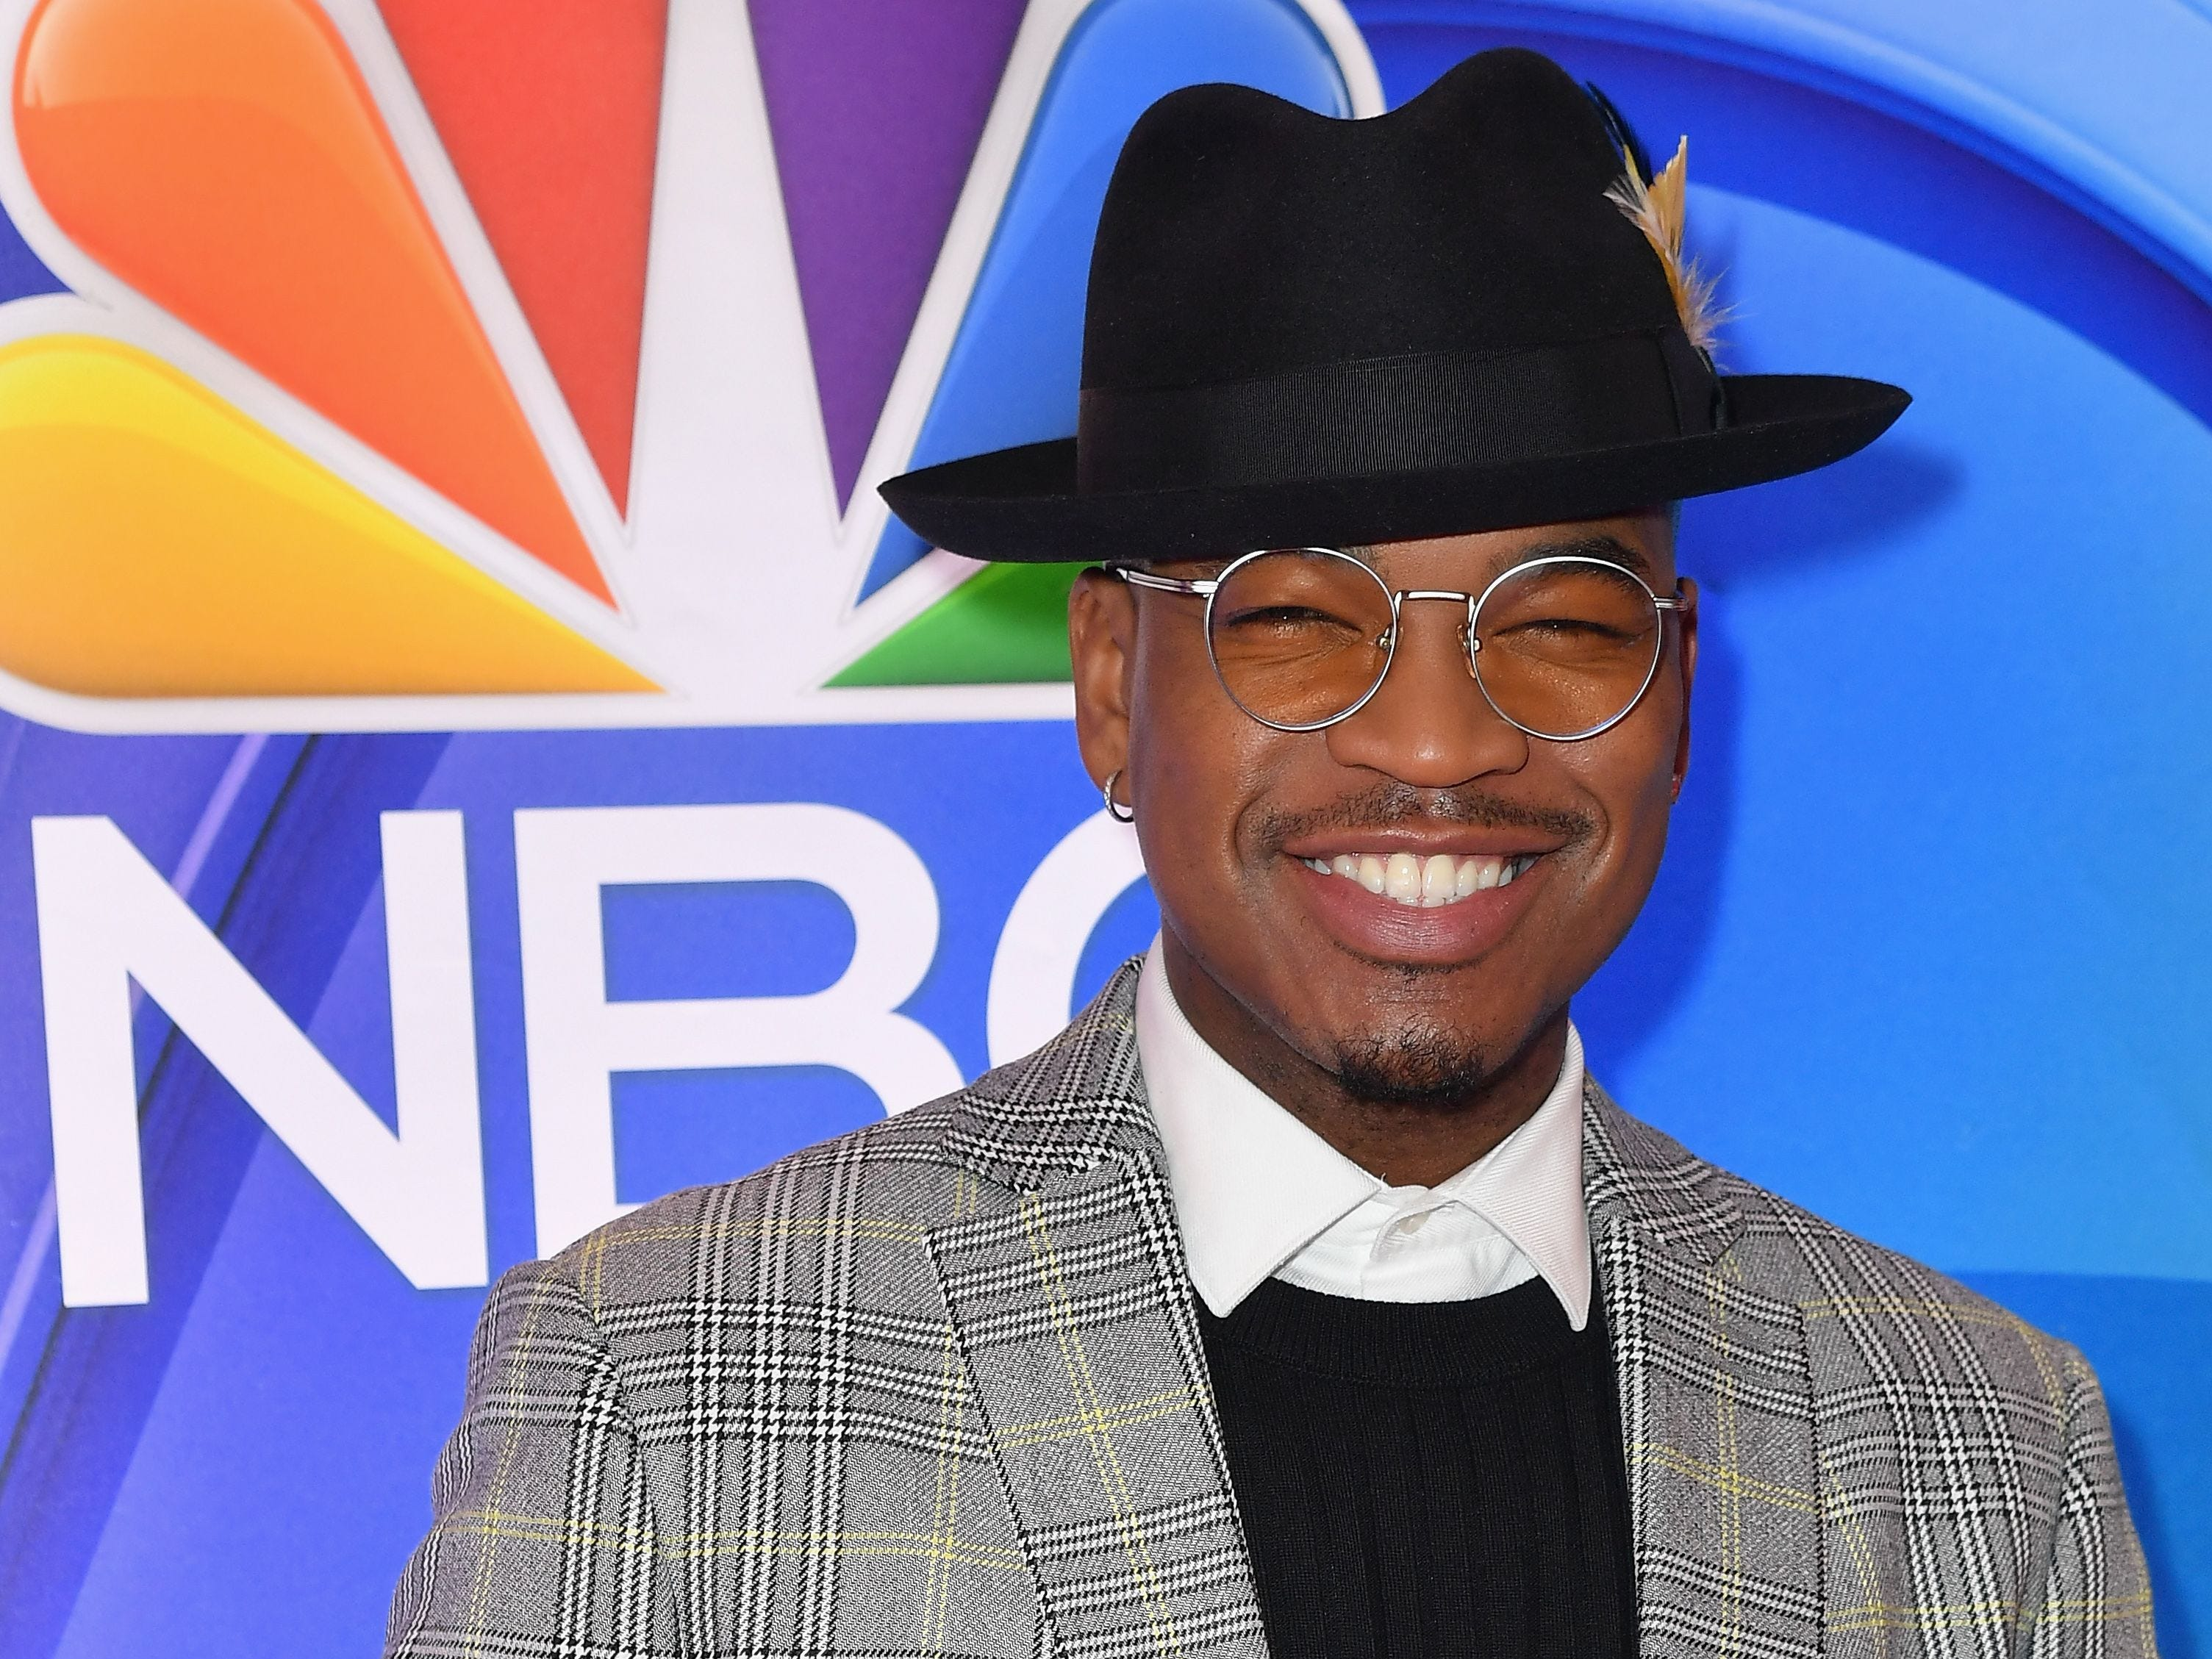 NE-YO attends the NBC mid-season press junket at The Four Seasons in New York on January 24, 2019. (Photo by Angela Weiss / AFP)ANGELA WEISS/AFP/Getty Images ORG XMIT: NBC Press ORIG FILE ID: AFP_1CL866